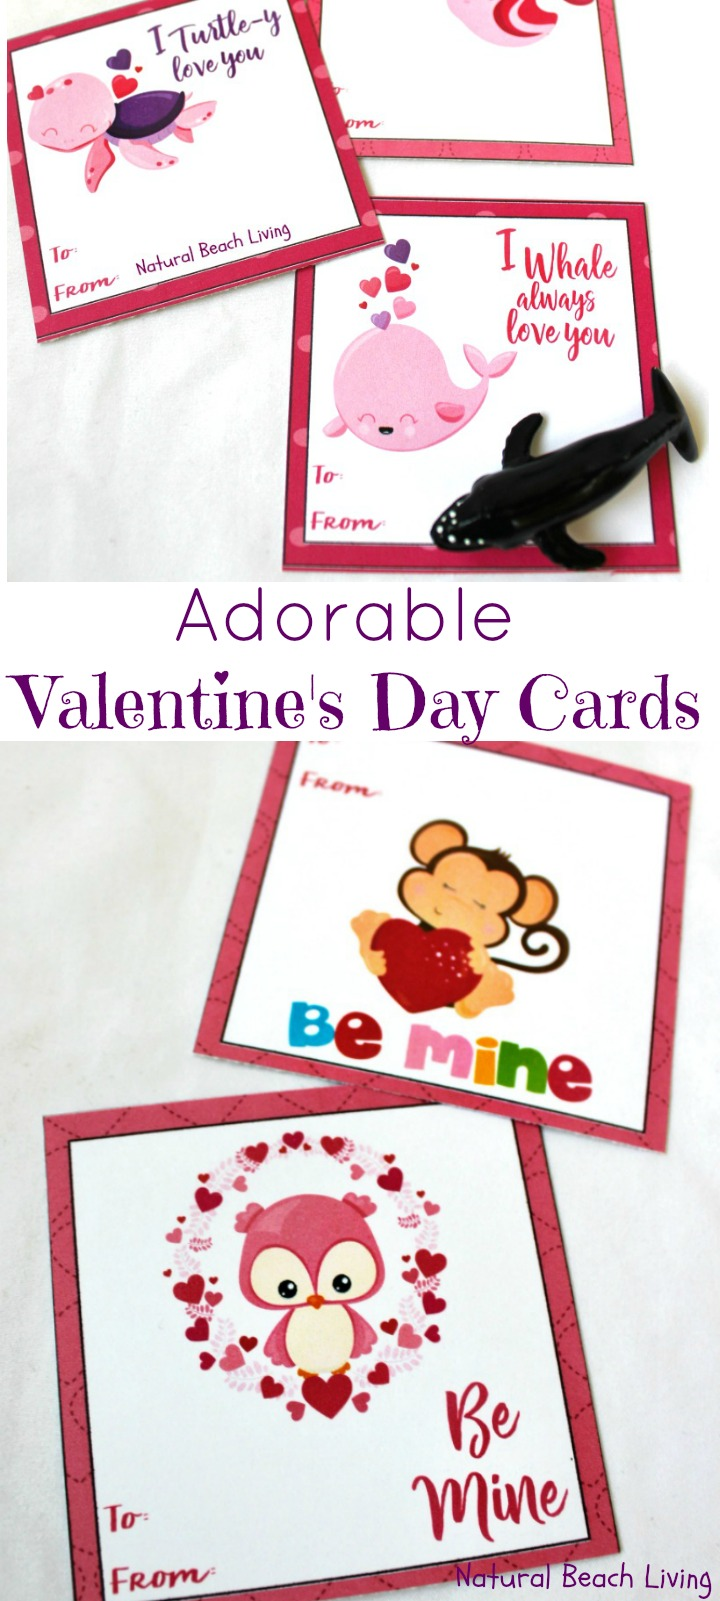 graphic regarding Printable Valentines Day Cards for Kids identified as Cute Preschool Valentines Working day Playing cards (cost-free printables